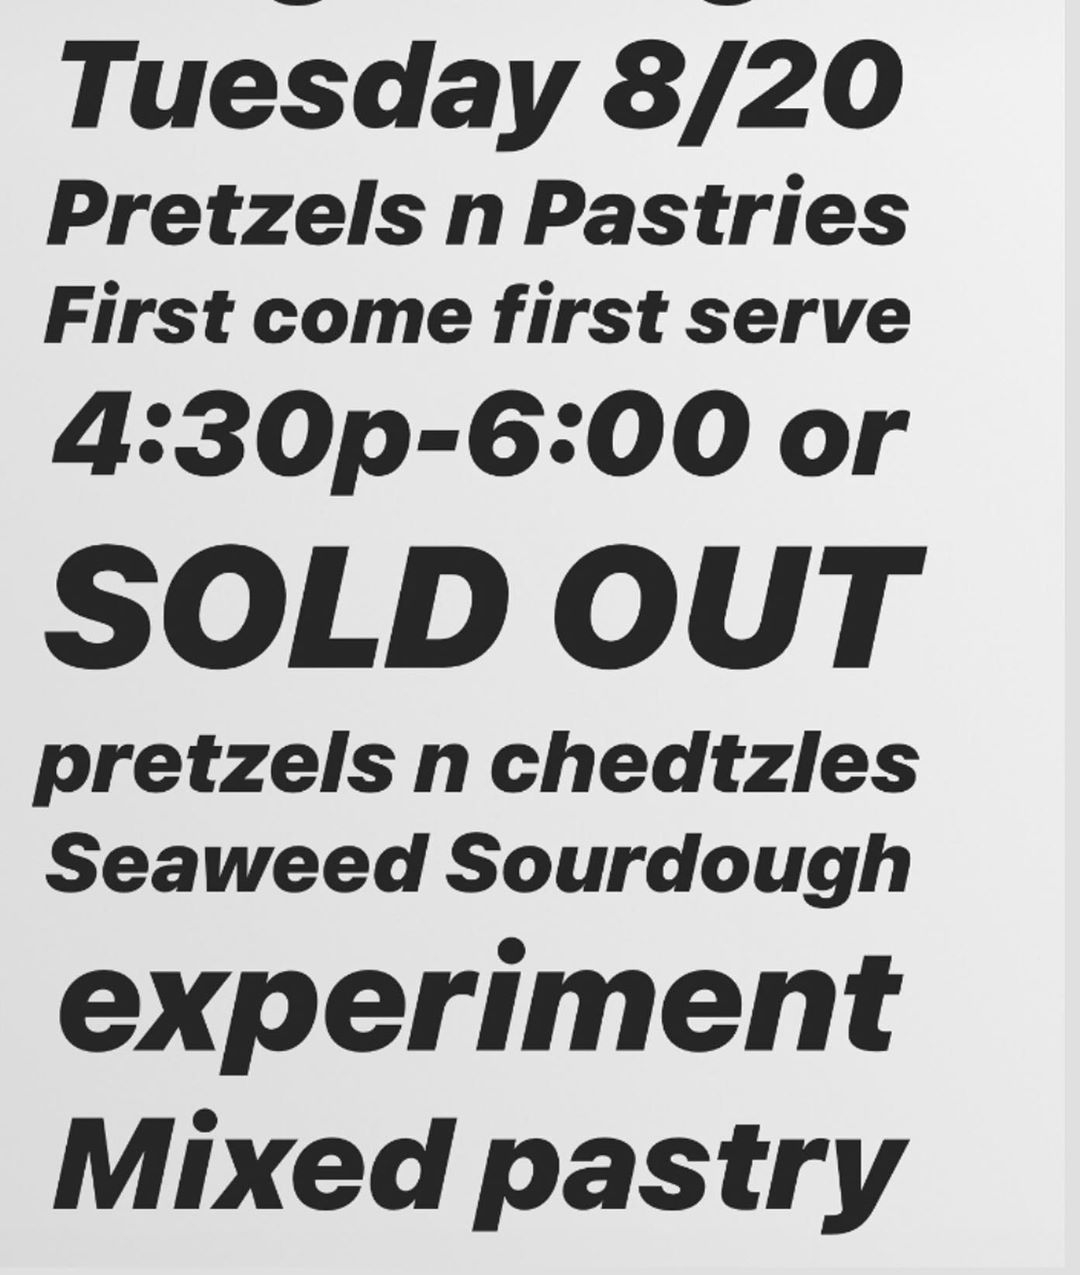 Tuesday 8/20  Pretzels, pastry, pizza (Focaccia) 4:30-6:00pm or sold out .  First come first serve Contact me for directions  No reservations necessary (all are welcome)  Who's gonna be here?  Pretzels, chedtzles, marinara focaccia, caramelized onion focaccia, cardamom buns, blueberry crumb cake, chocolate cigars, black n whites, pb stuffed cocoa%2 #cardamombuns Tuesday 8/20  Pretzels, pastry, pizza (Focaccia) 4:30-6:00pm or sold out .  First come first serve Contact me for directions  No rese #cardamombuns